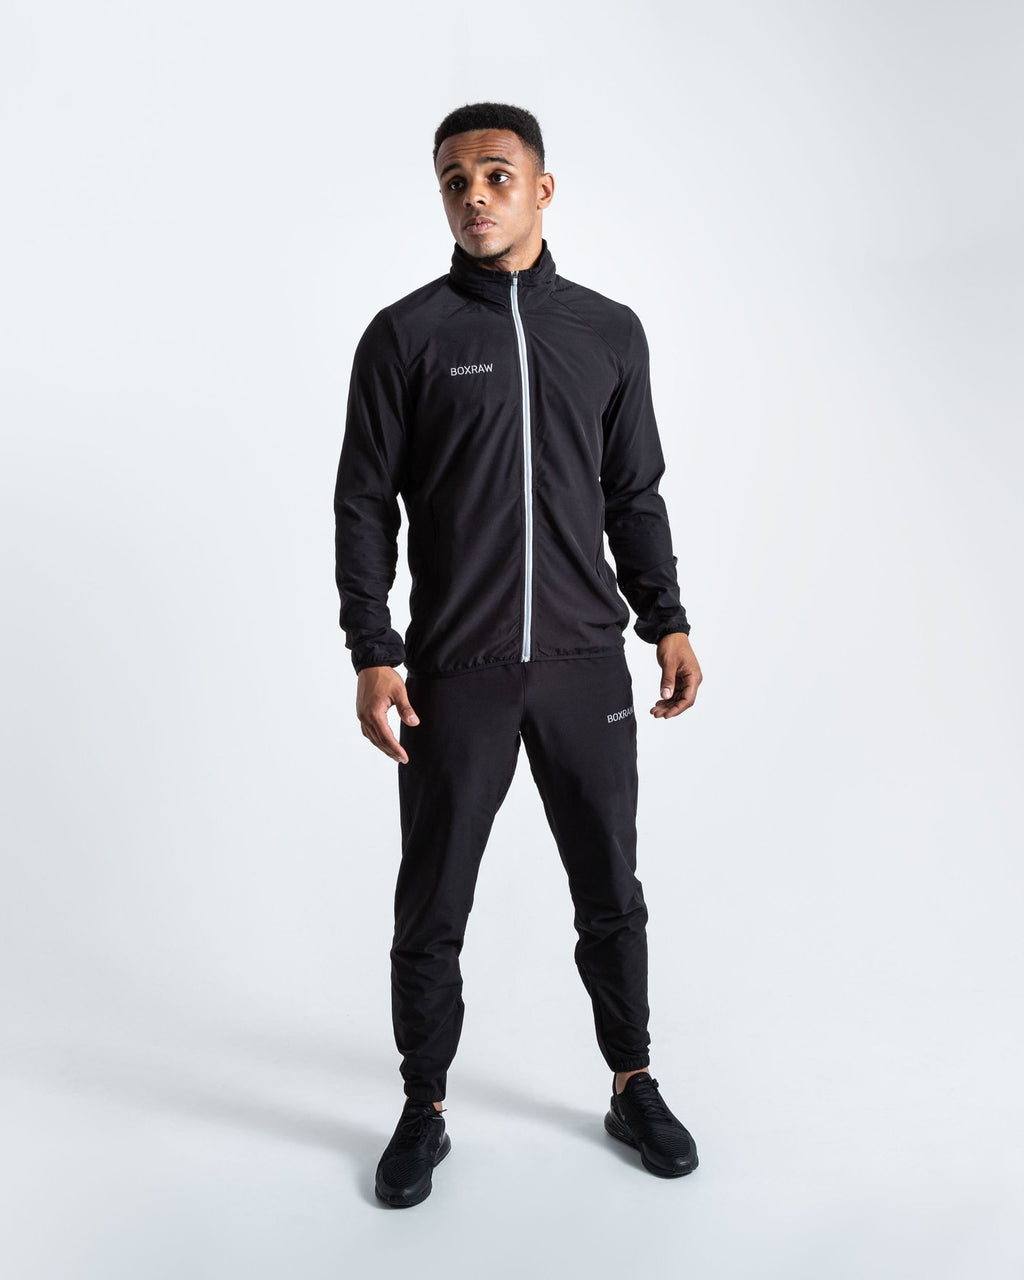 ROBINSON TRACKSUIT - BLACK - Pandemic Fight Gear Inc.